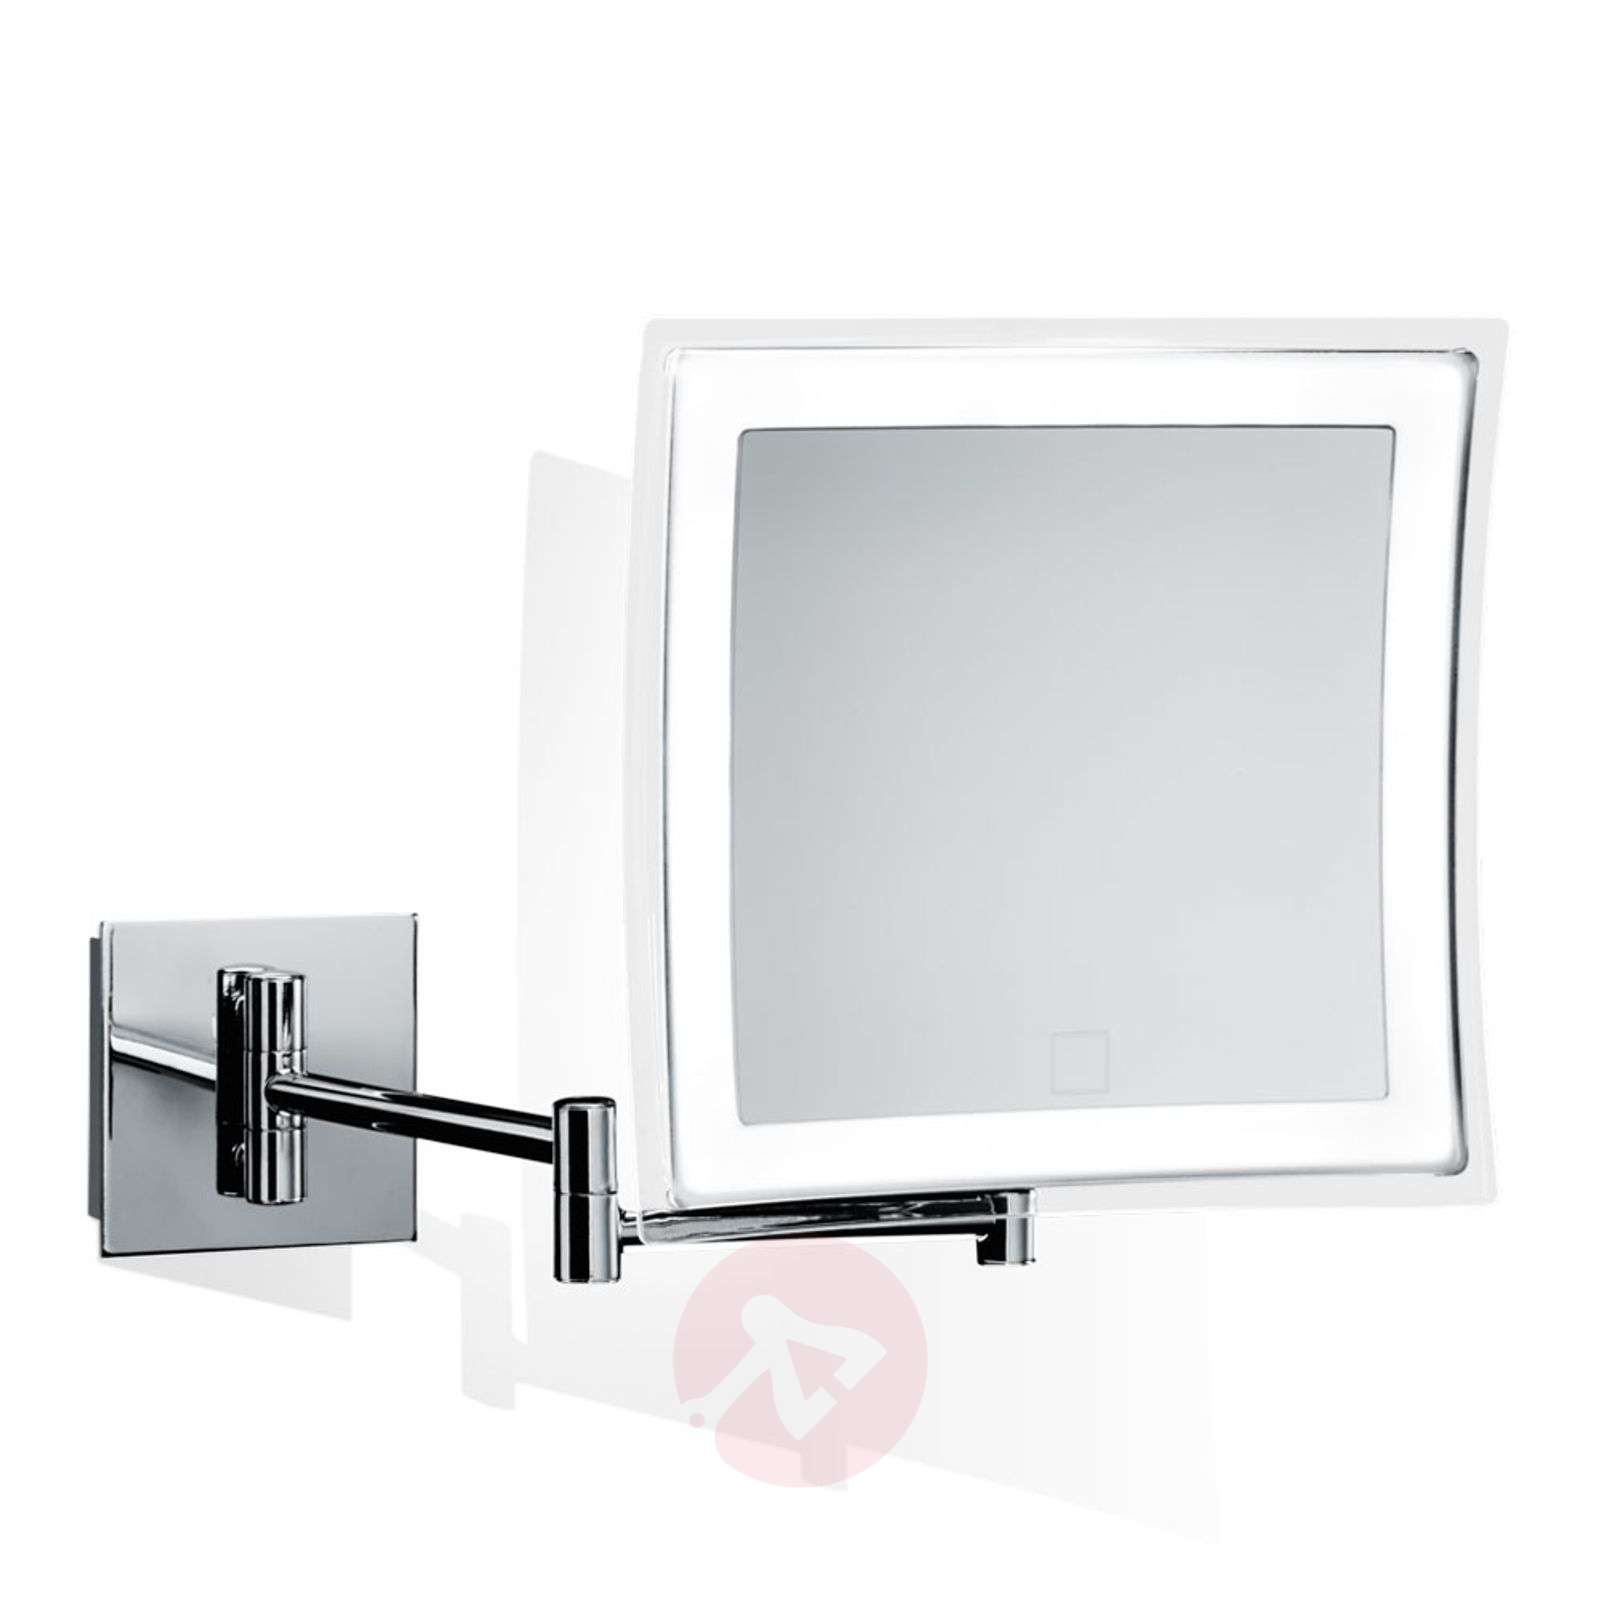 Decor Walther BS 84 Touch LED wall mirror square-2504972-01